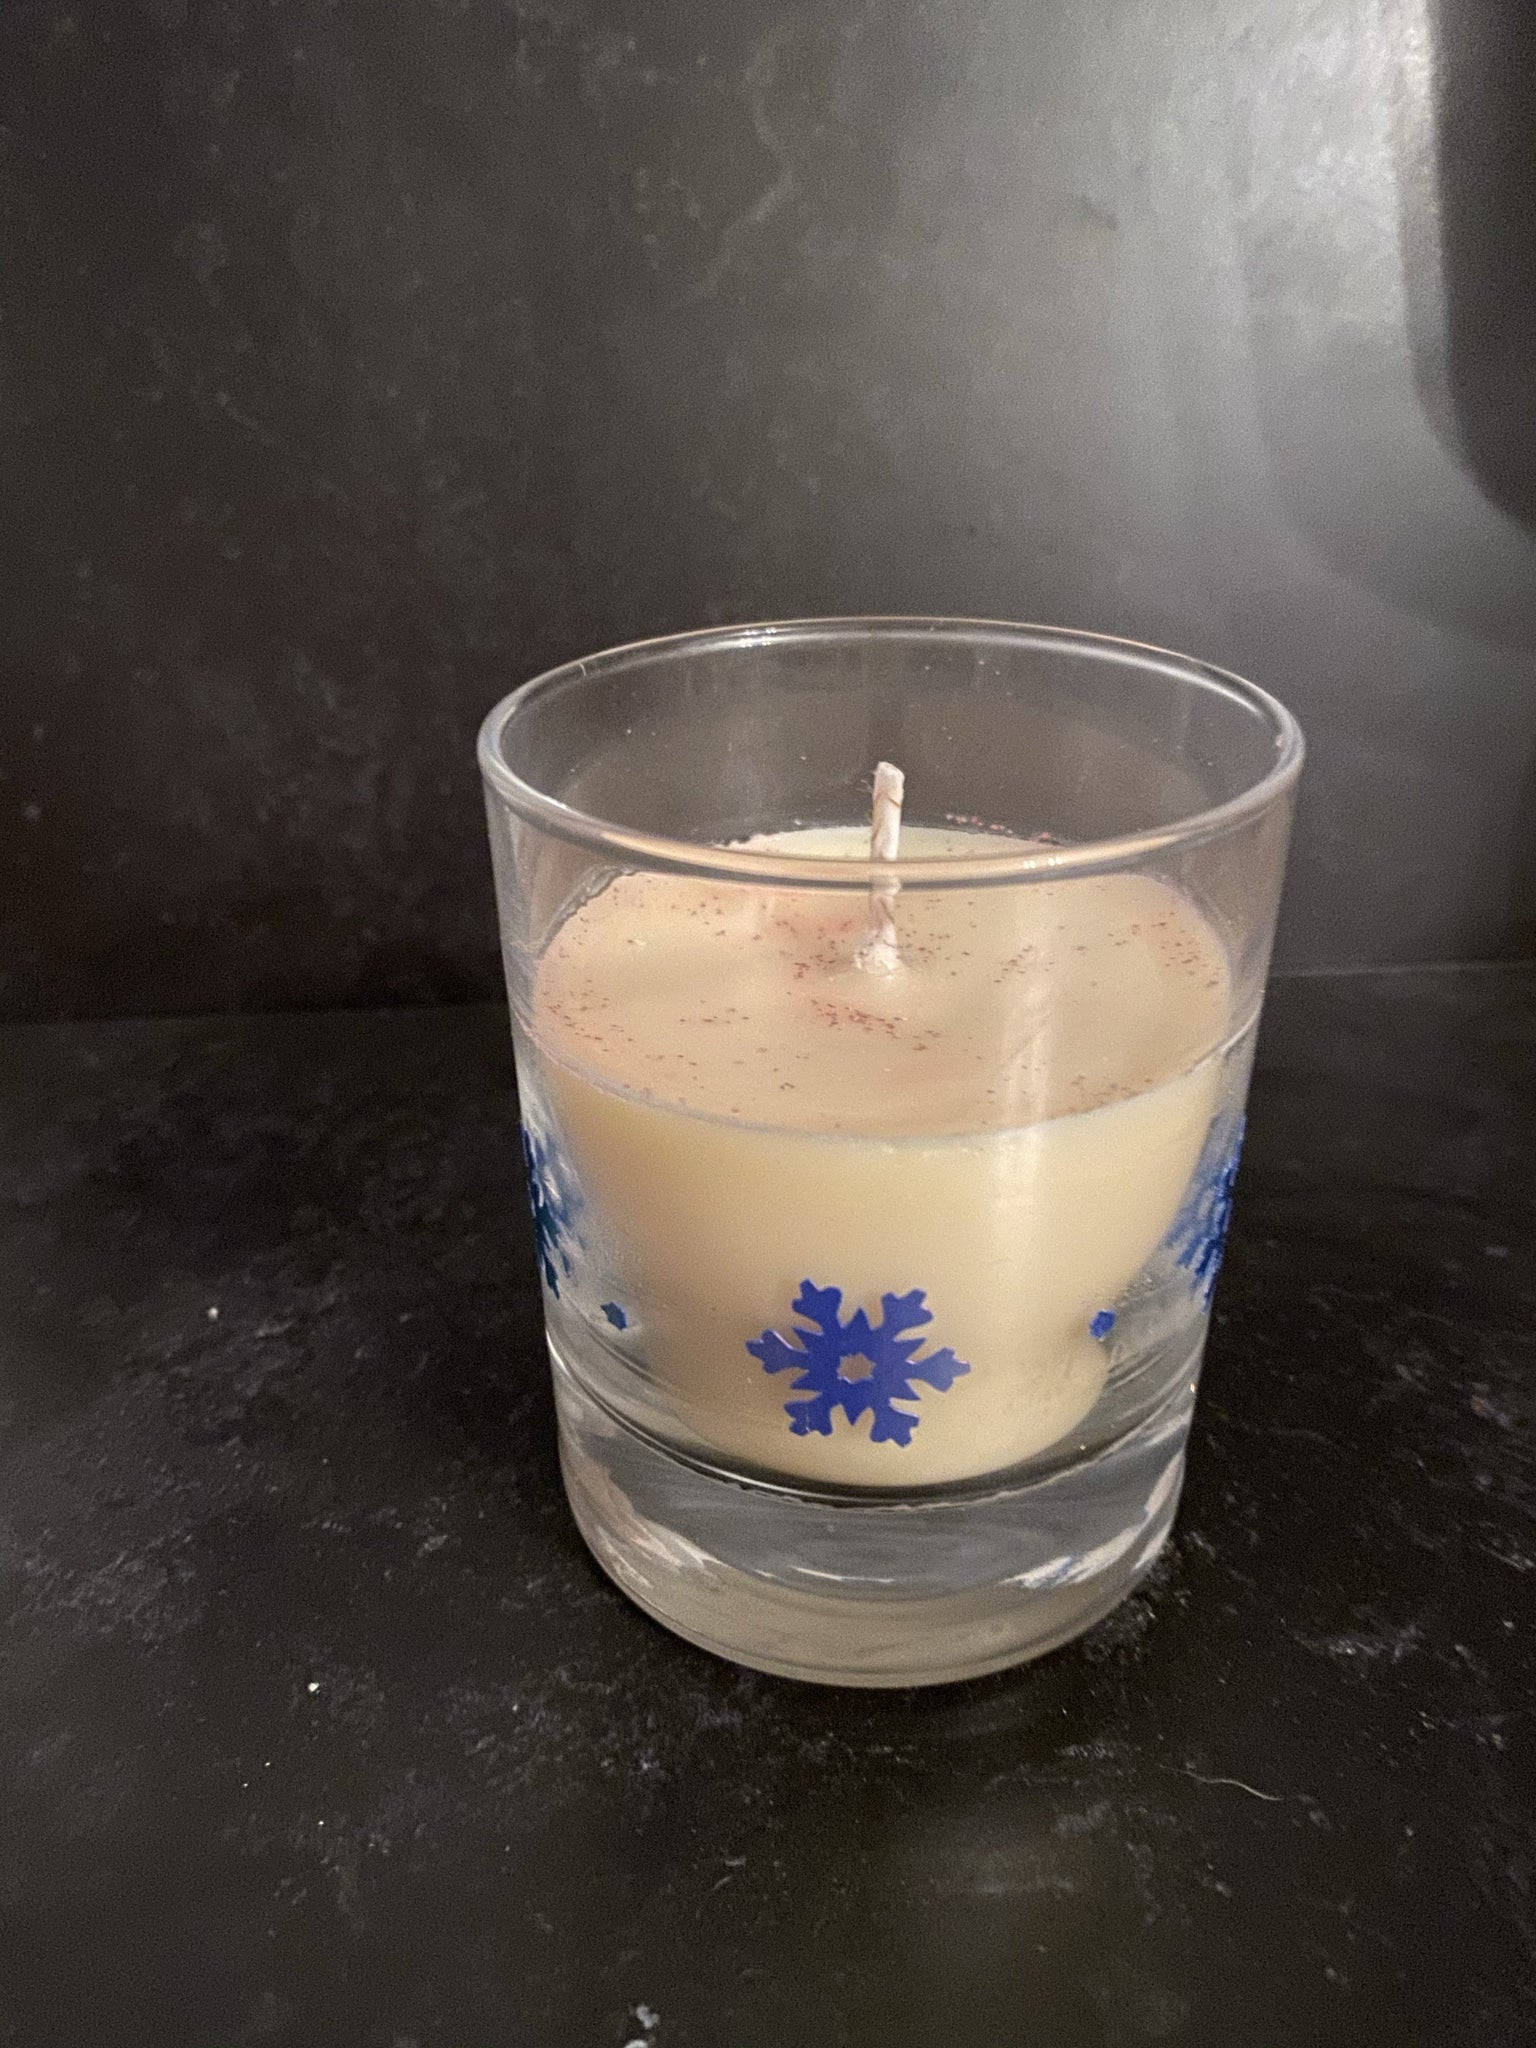 Christmas candles with snowflakes